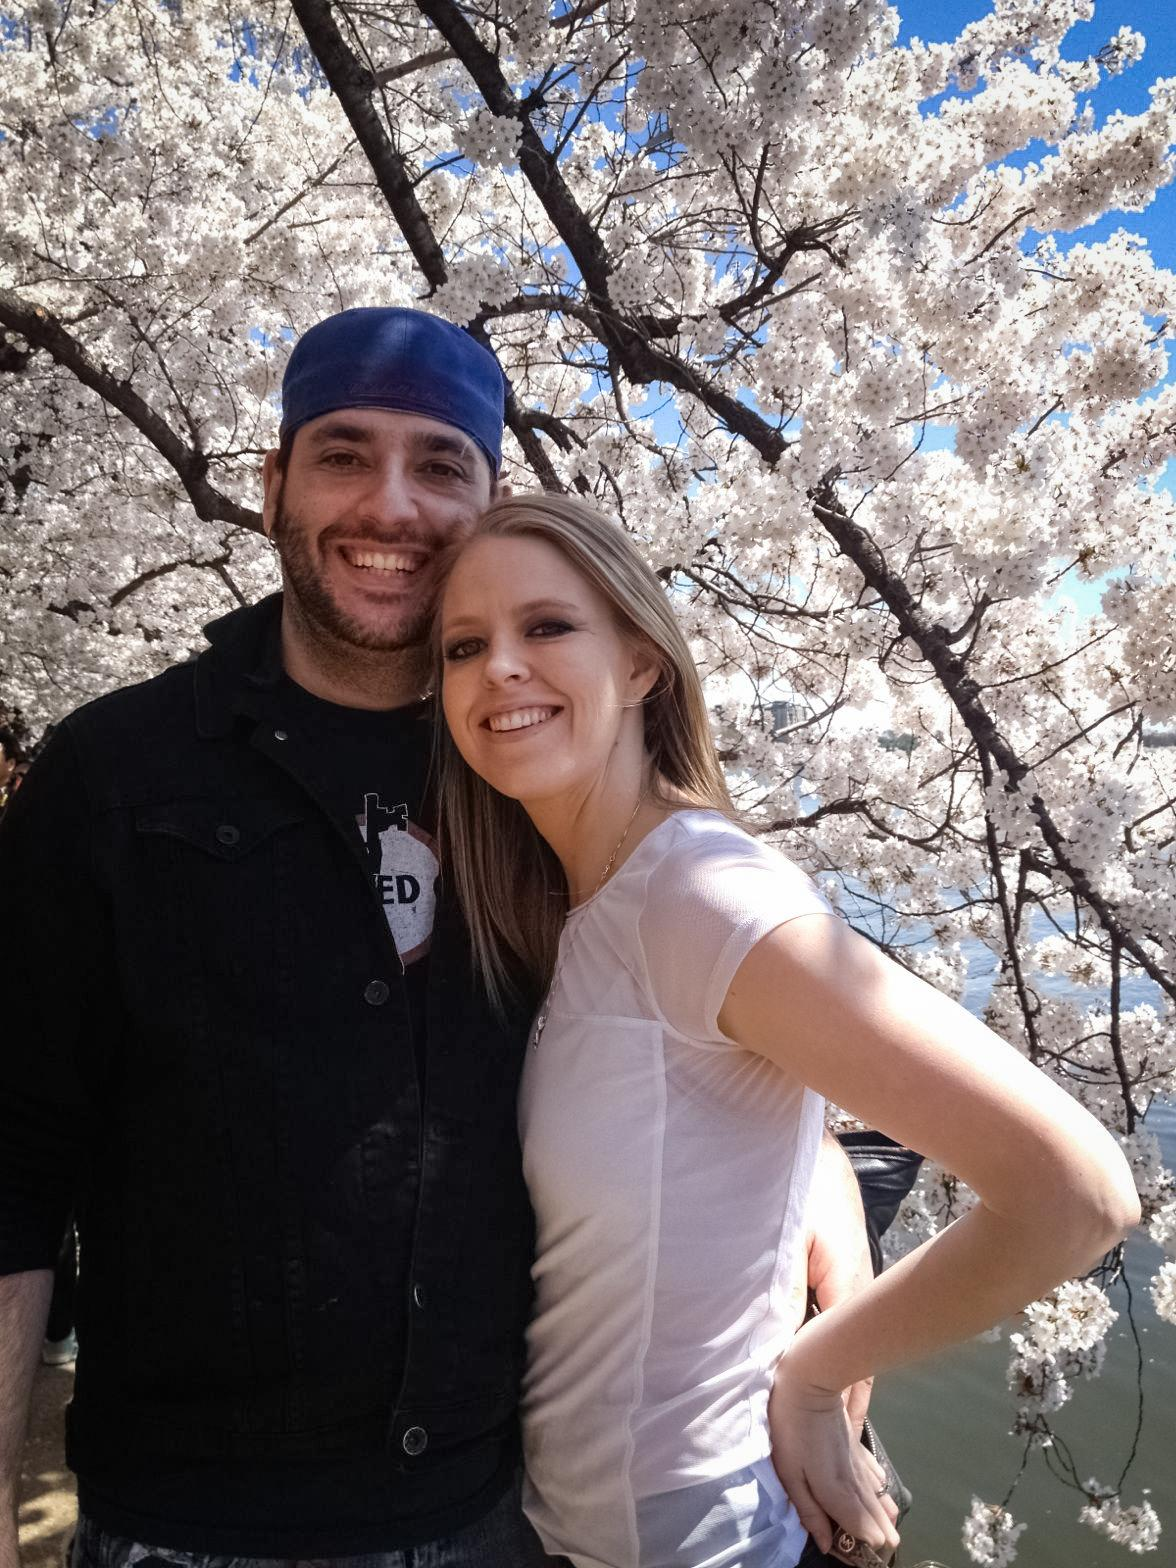 Carissa Helmer and her husband, Timothy, had been trying to get pregnant for months when COVID-19 first spiked in the Washington, D.C., area where they live. Helmer says she's found a few things convenient about being pregnant now: being able to work from